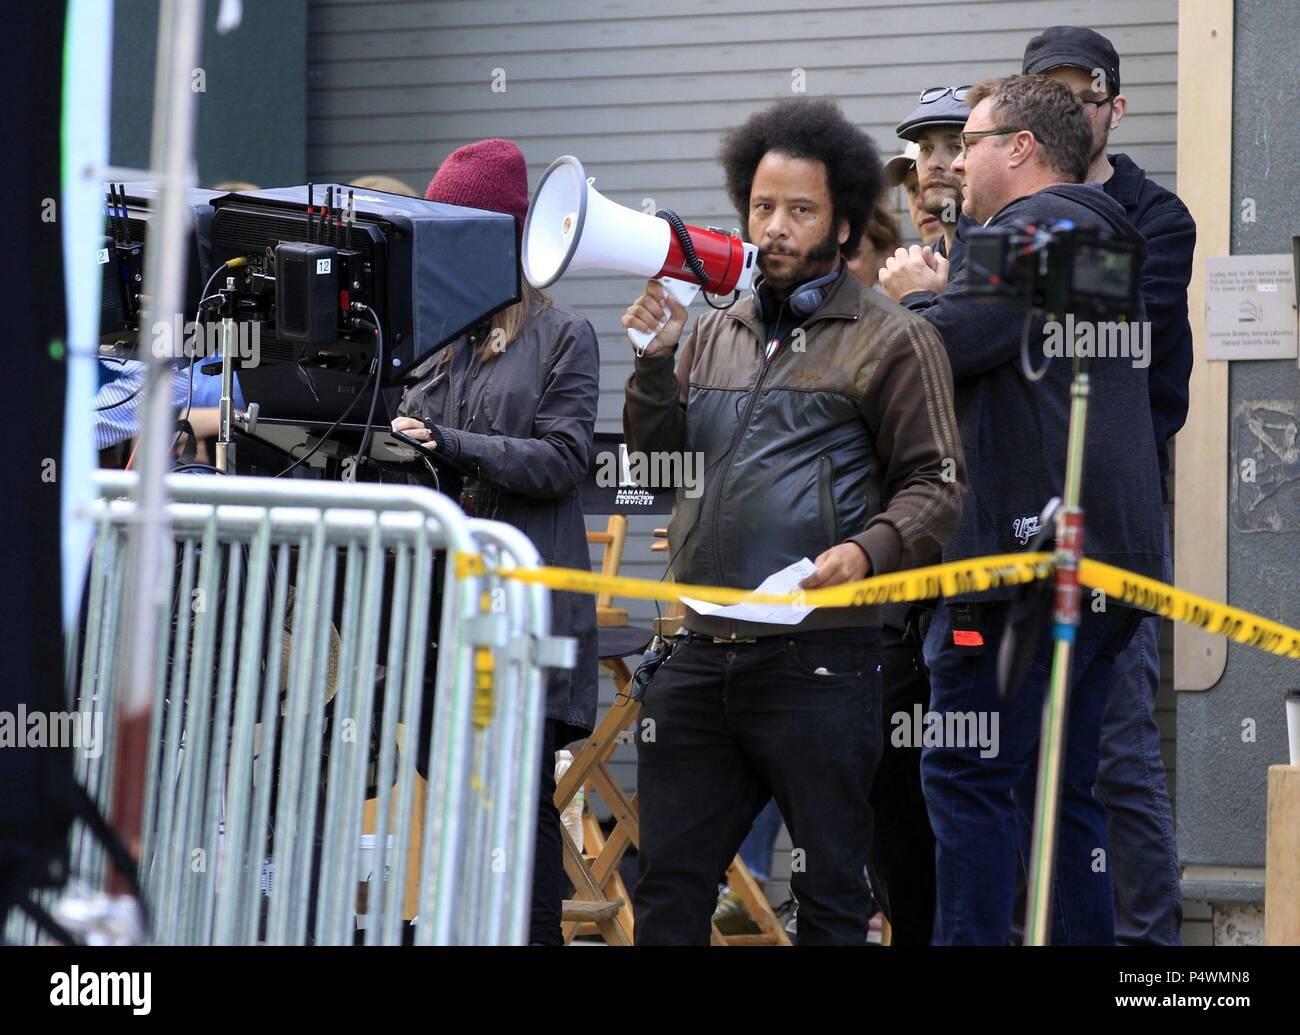 Original Film Title Sorry To Bother You English Title